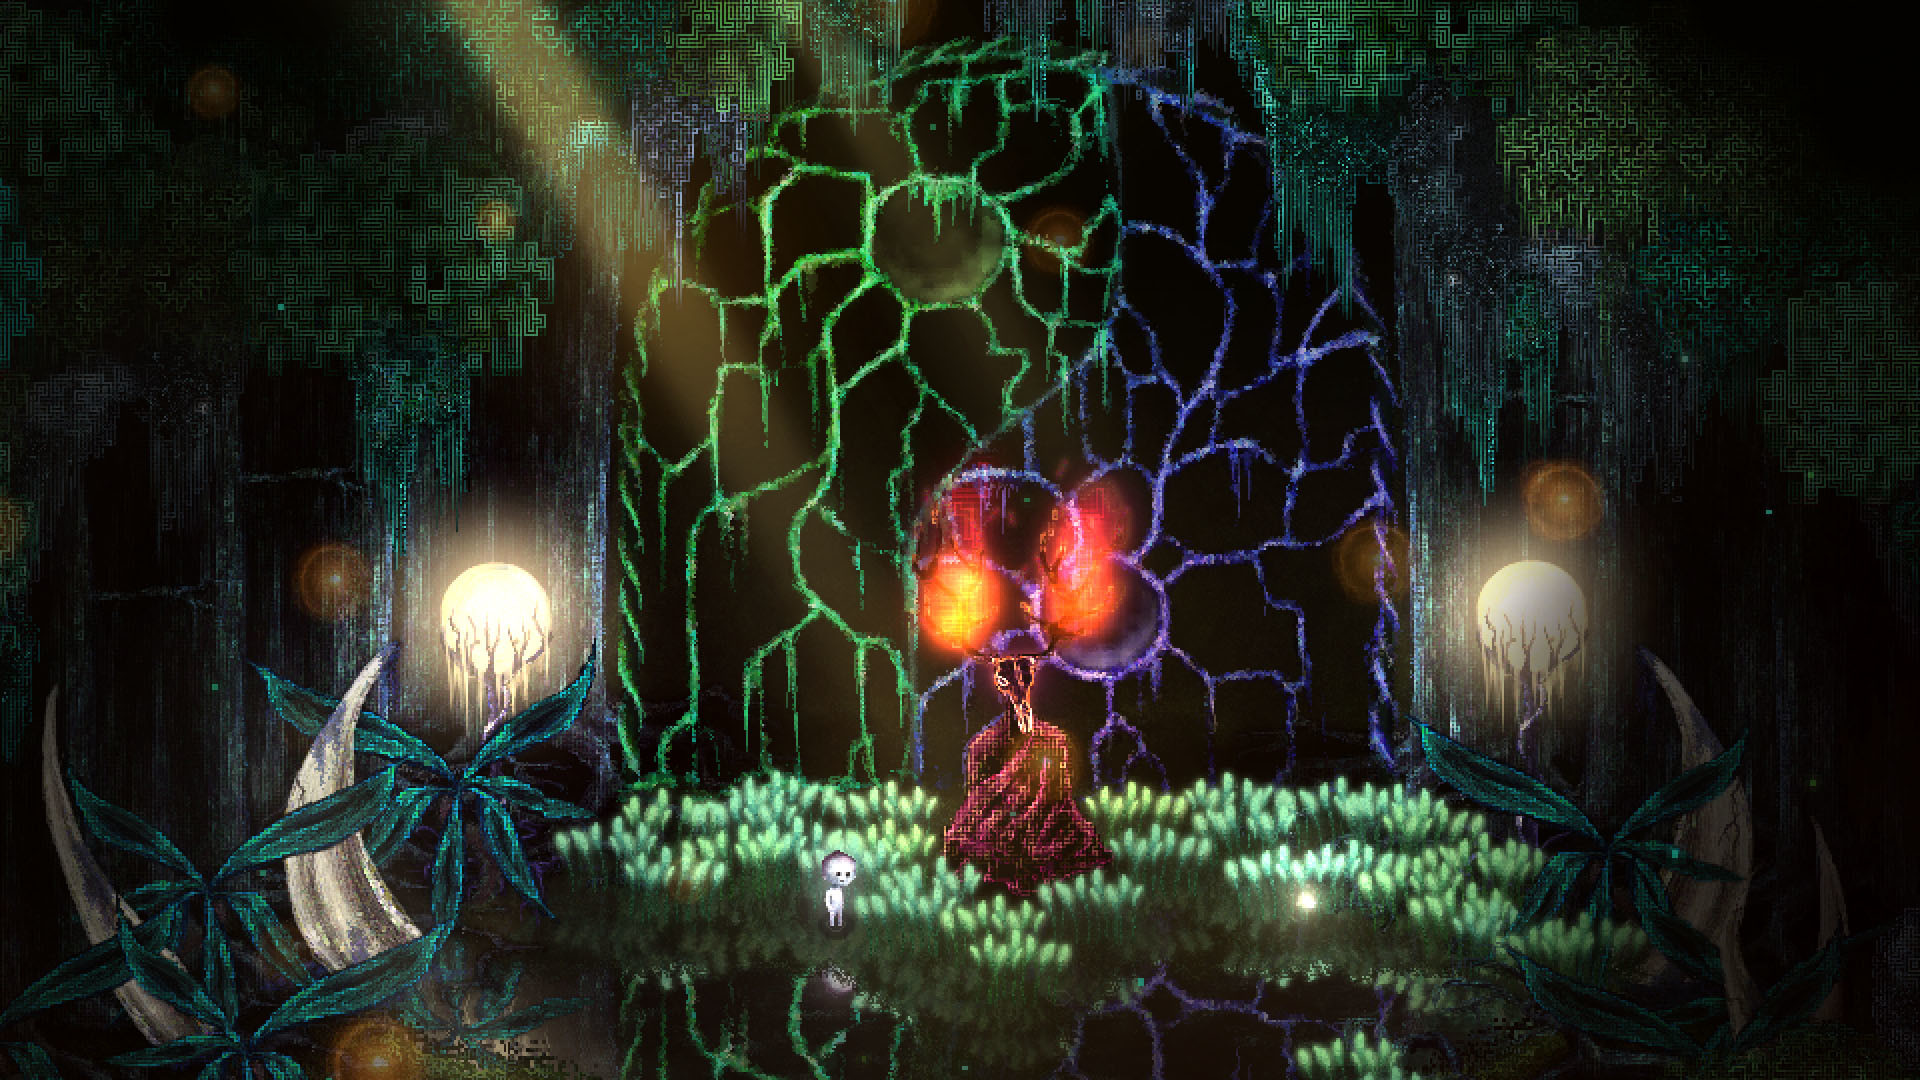 Dap is an eerie Pikmin and Princess Mononoke mashup, out on Steam this month